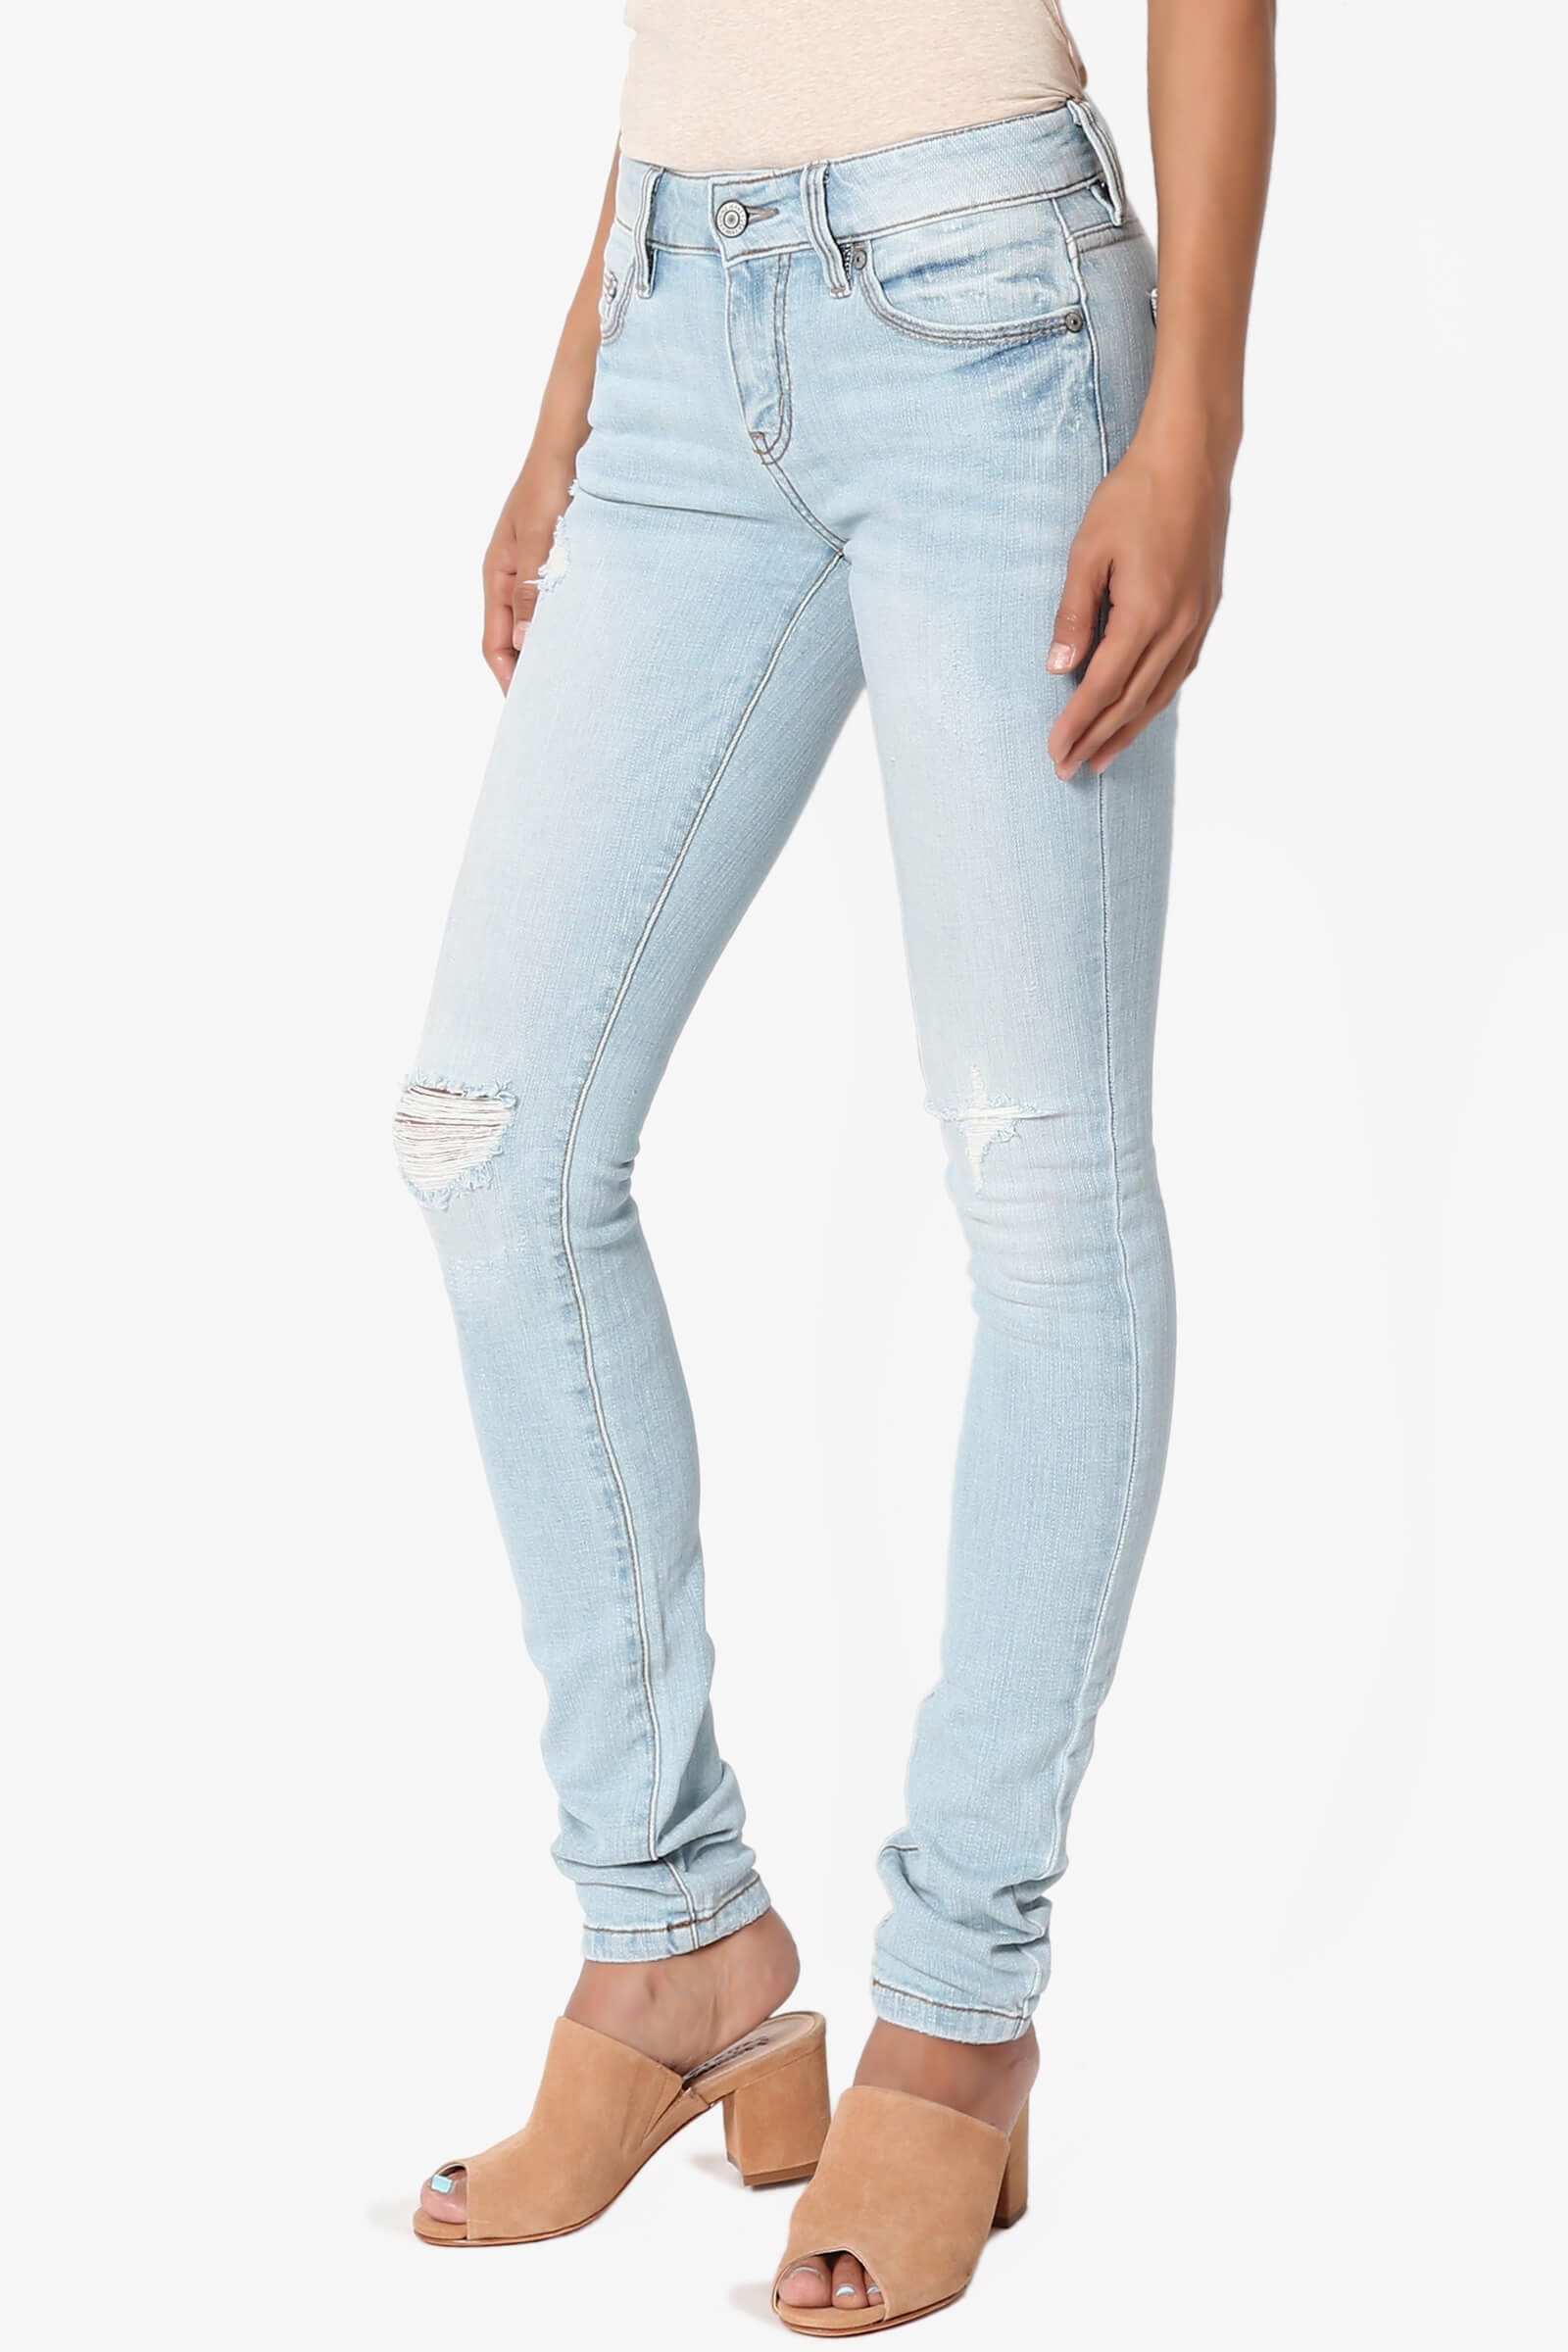 Miss Me Womens Boot Cut Embroidered Light Wash Ripped Jeans JPB Sz 30 - NWT. Brand New. $ or Best Offer. Free Shipping. New Listing Women's KENNETH COLE Light Wash Ripped Jess Skinny Jeans Jean SIZE VARIETY. Brand New. $ to $ Buy It Now. Free Shipping. Paparazzi Jeans Distressed Light Wash Ripped Sequin Cuffed Denim size 3.